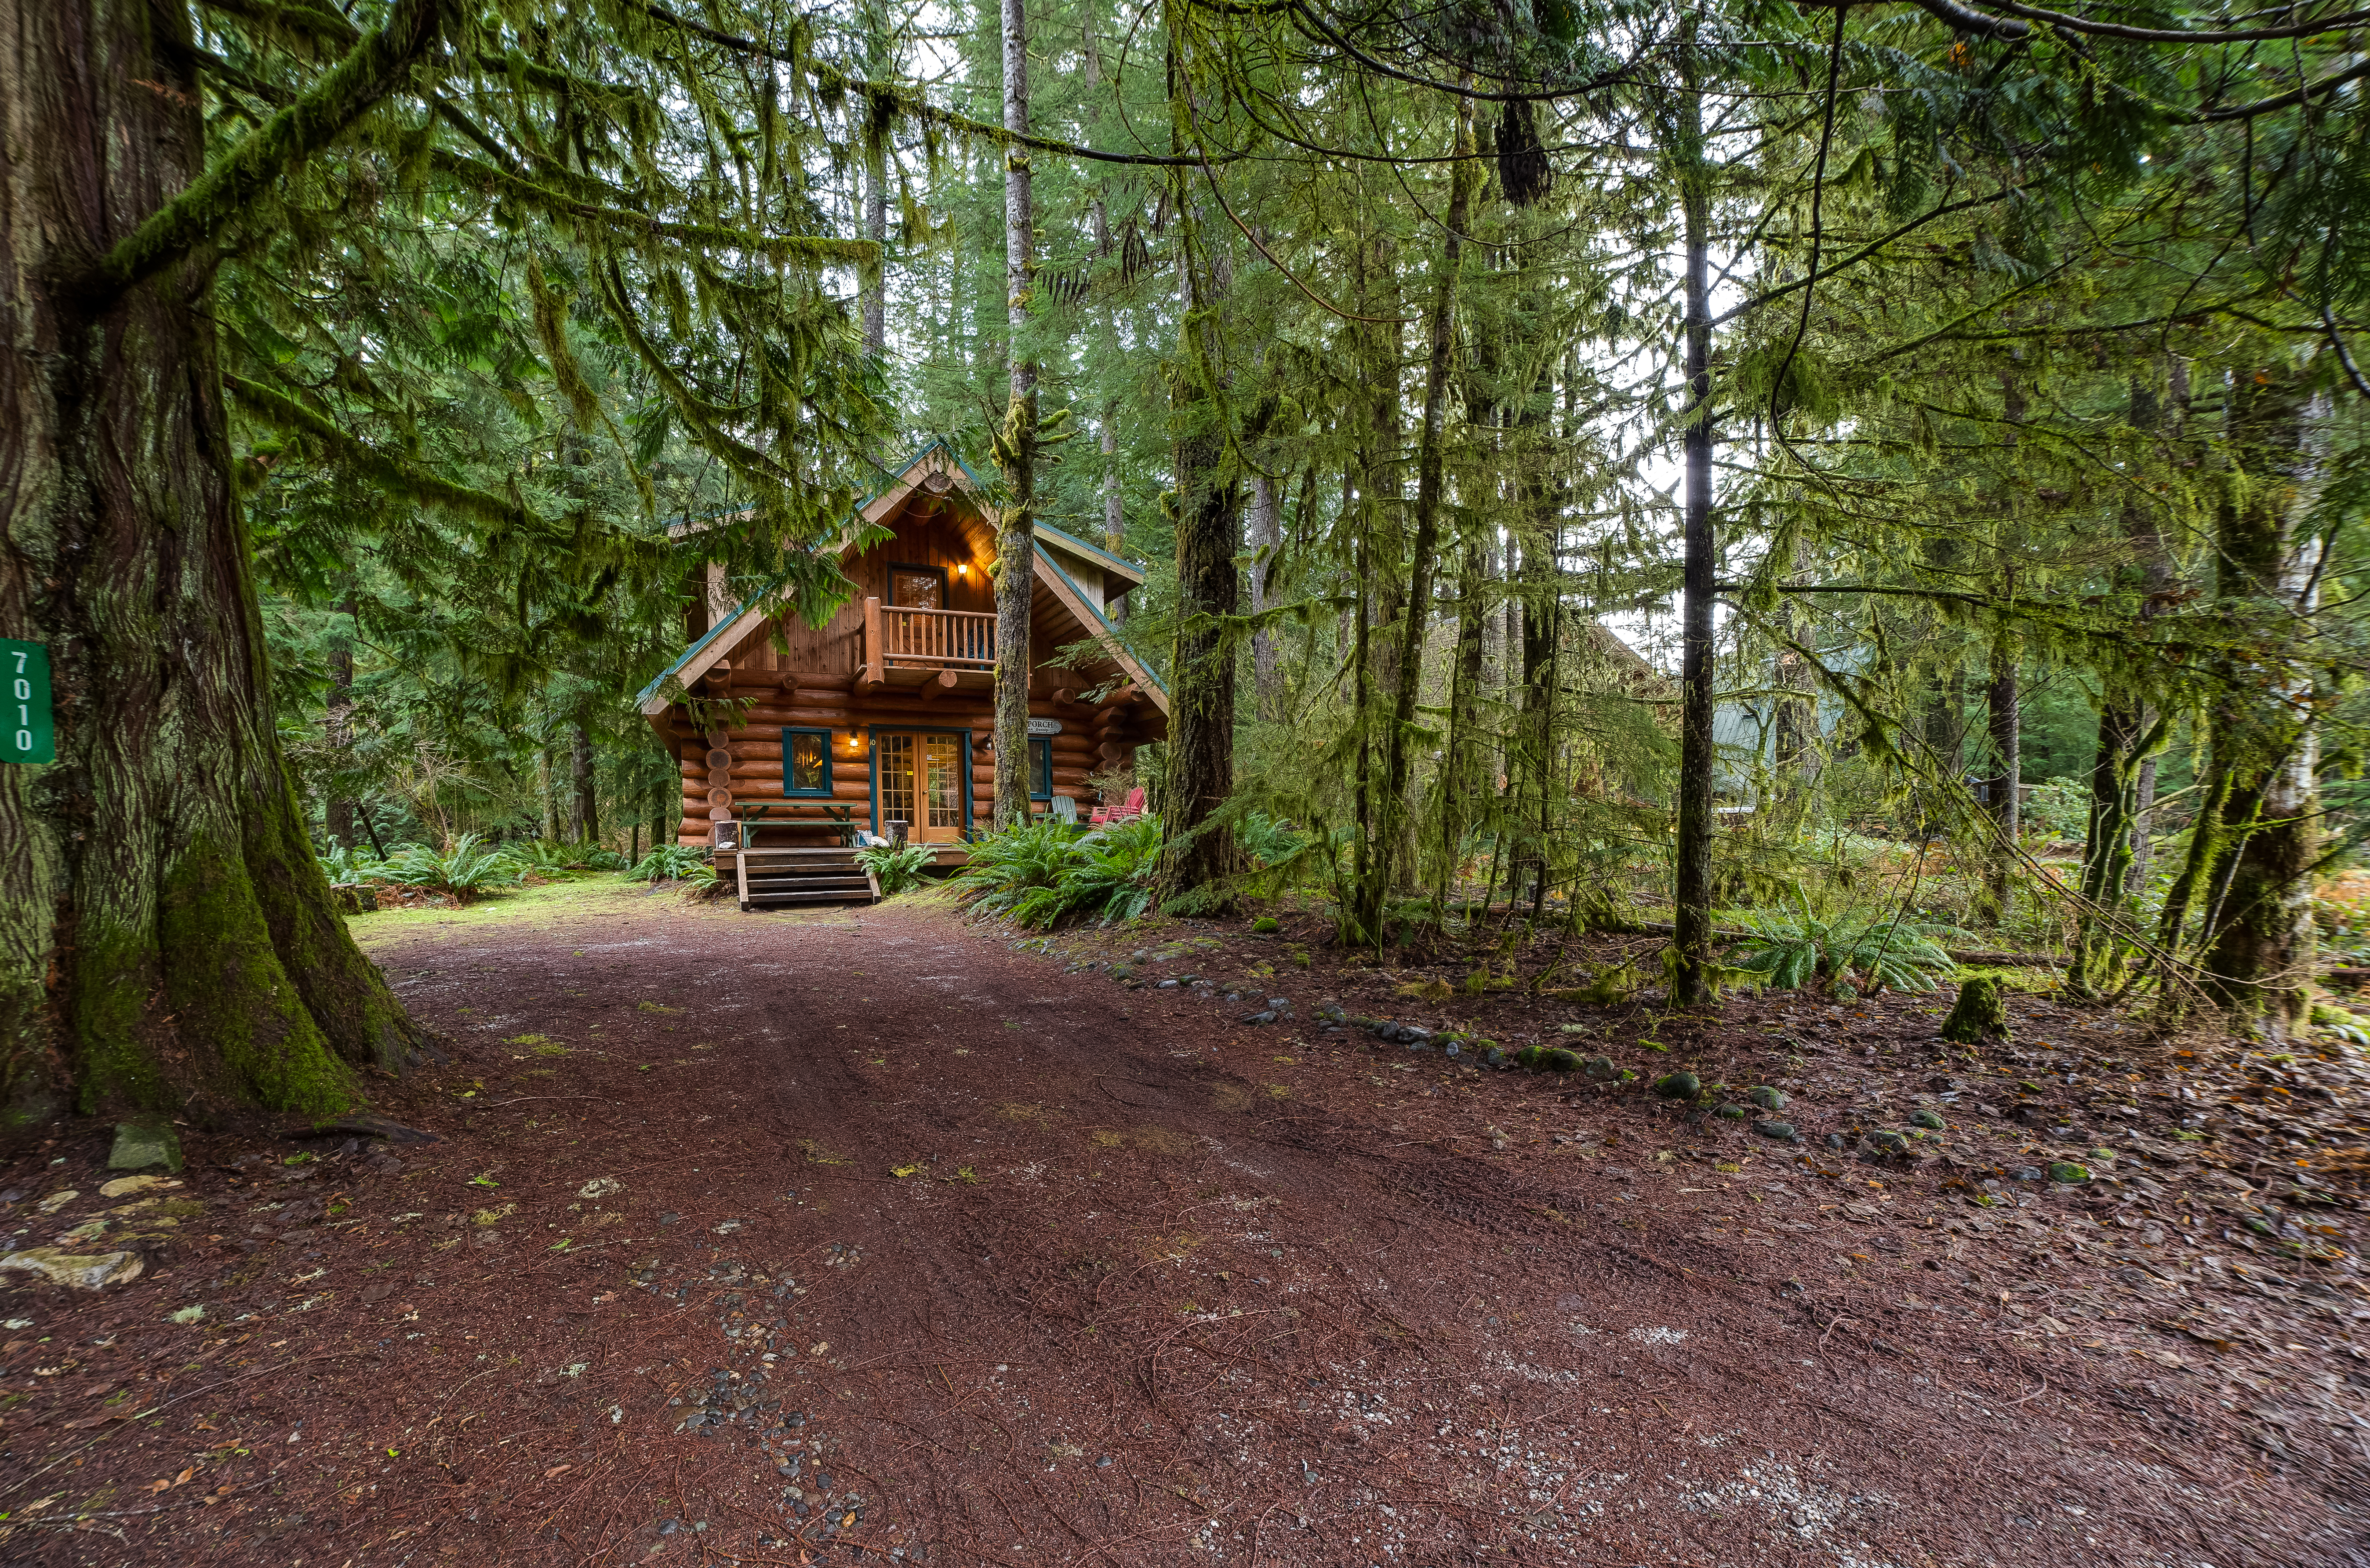 Driveway and front of cabin